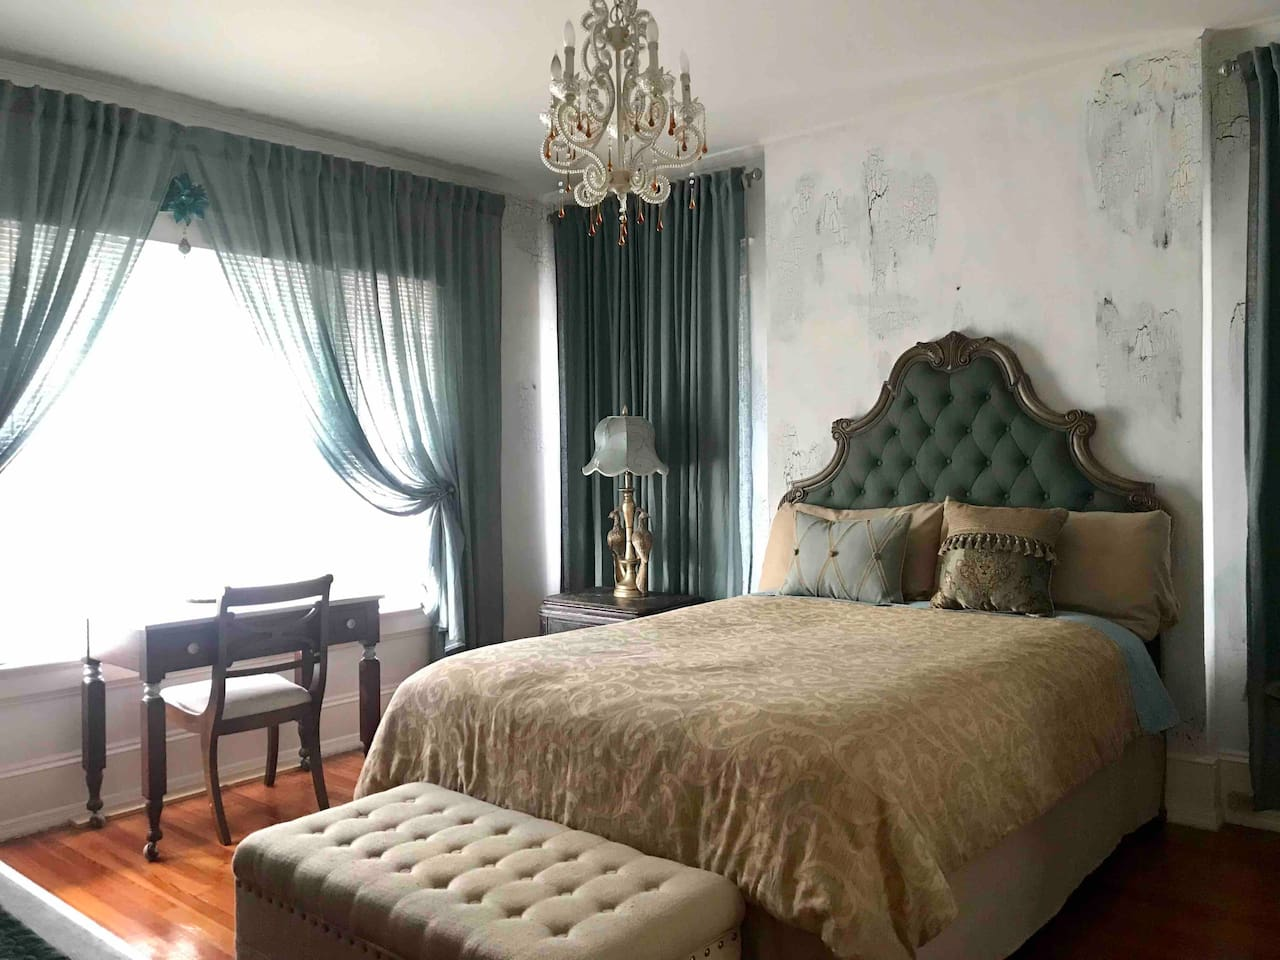 You'll feel like royalty while staying in the peacock inspired room. Sleeping on a comfy bed underneath an elegant chandelier will bring relaxation into your dreams.